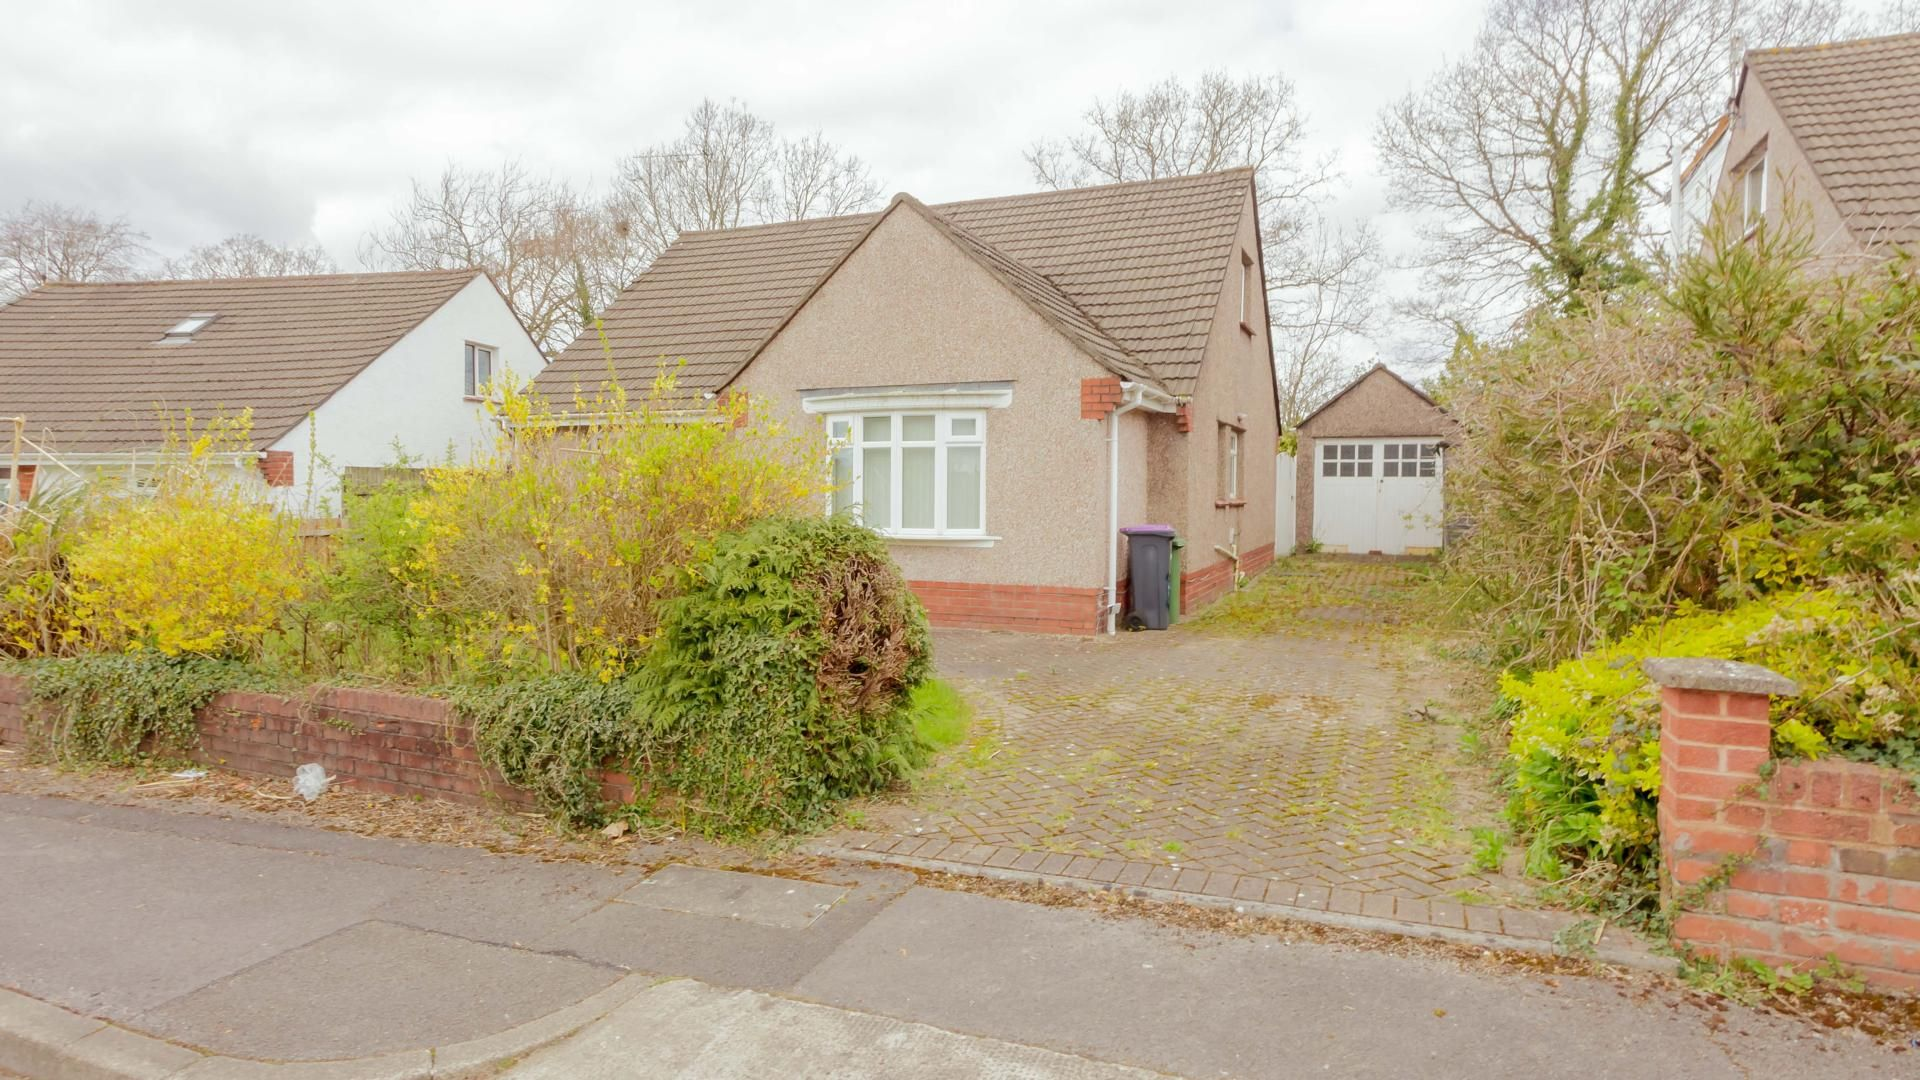 4 bed bungalow for sale in The Pastures, NP44